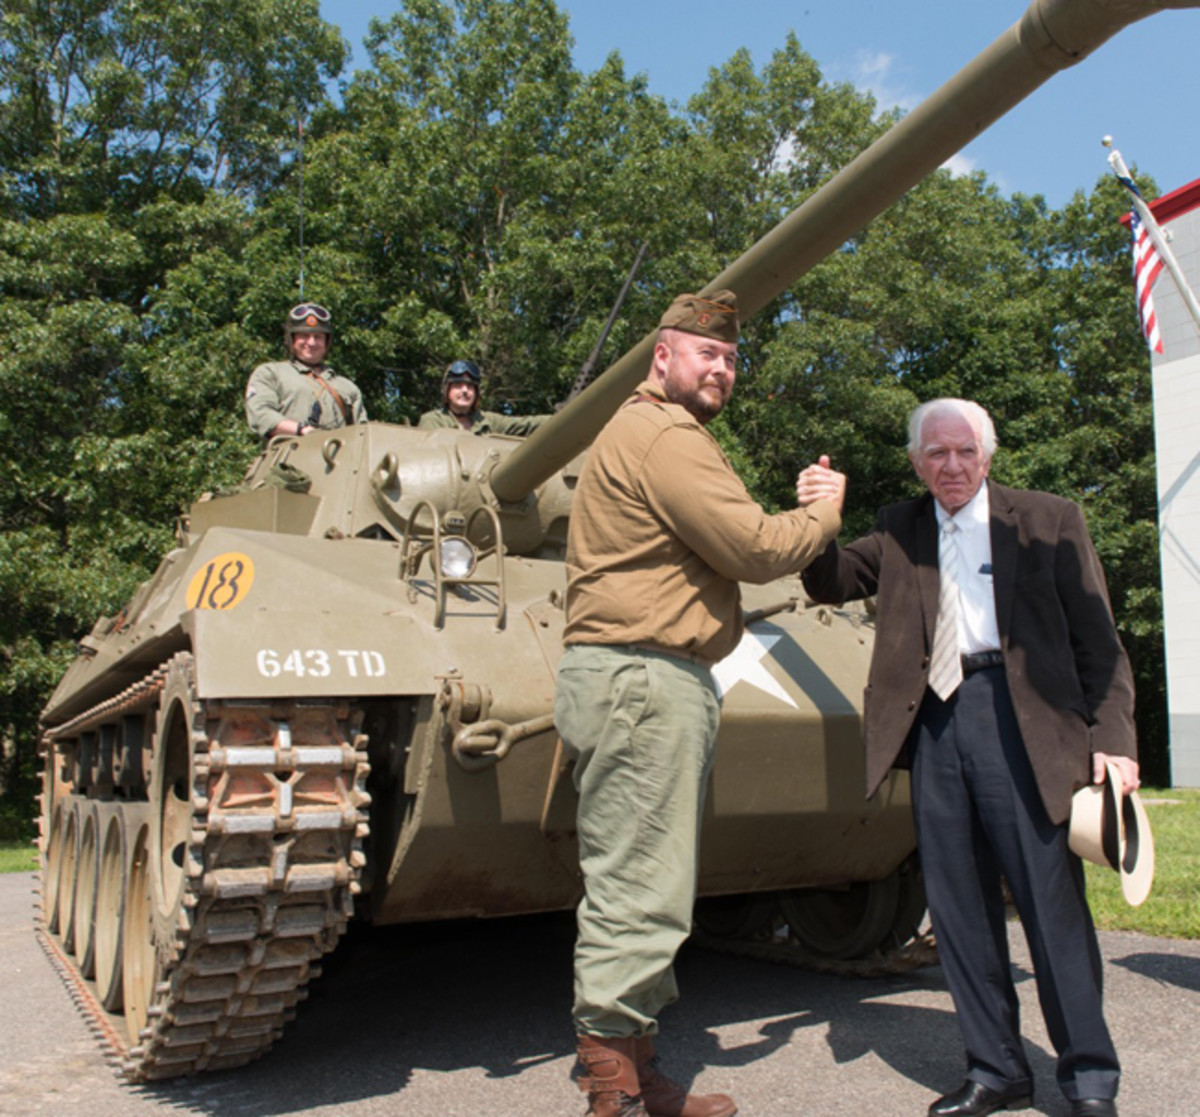 Lawrence Kadish, founder of the Museum of American Armor welcomes (right) Al Barto of the U.S. Military Museum, Danbury, Connecticut as the New England museum donates its exhibits and armor assets to the New York institution in an unprecedented gift that allows their legacy to live on in a new home.